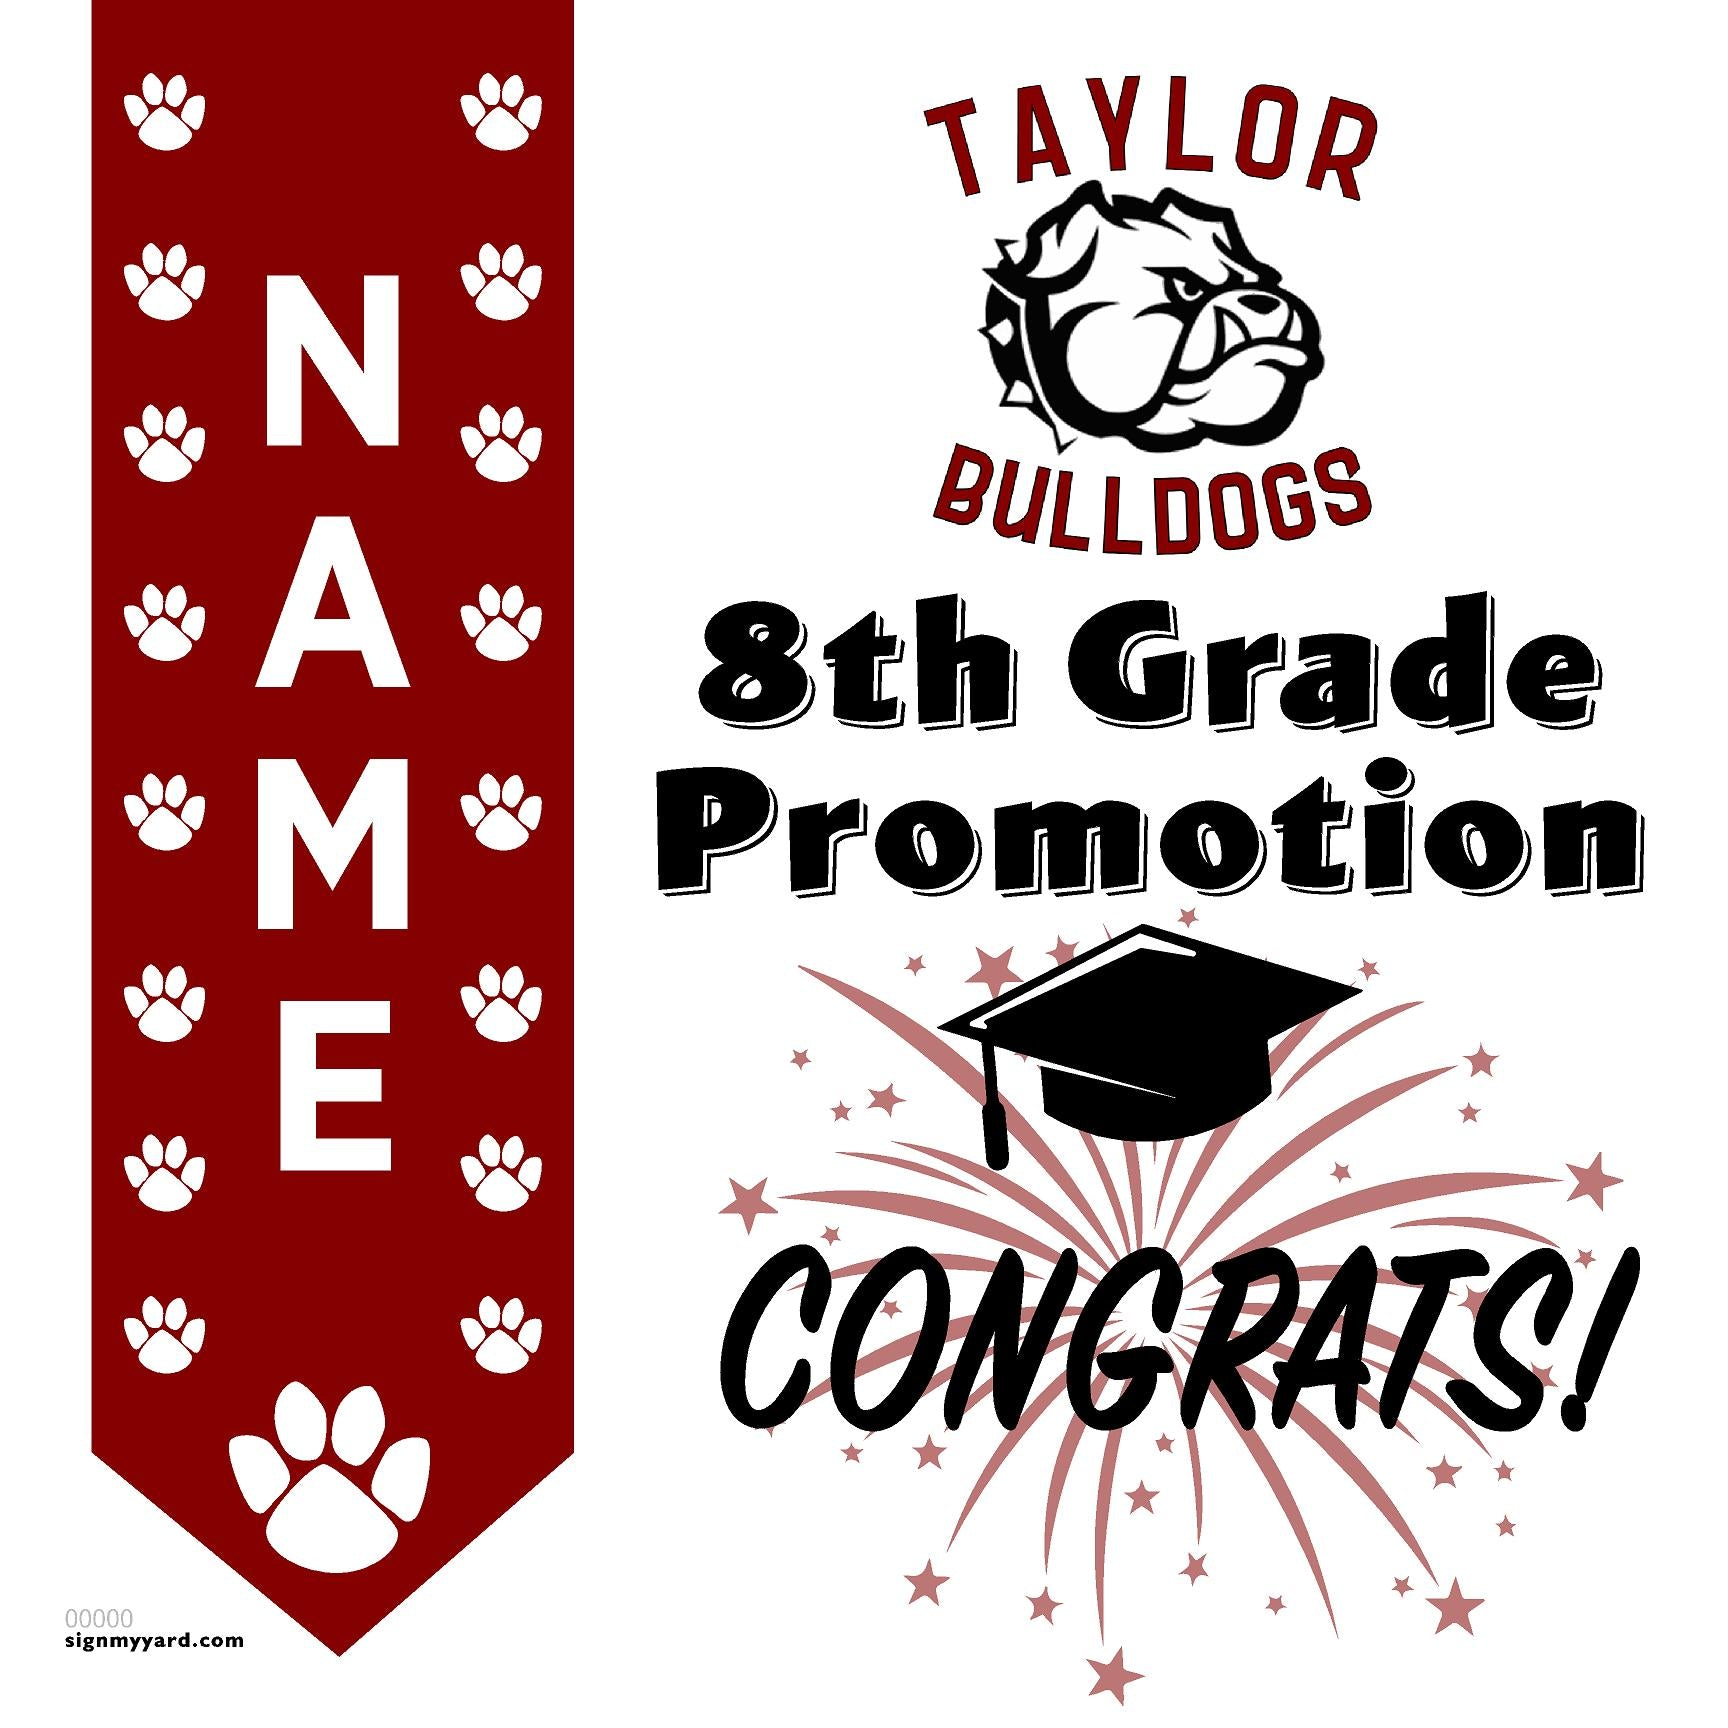 Taylor Middle School 8th Grade Promotion 24x24 Yard Sign (Option B)